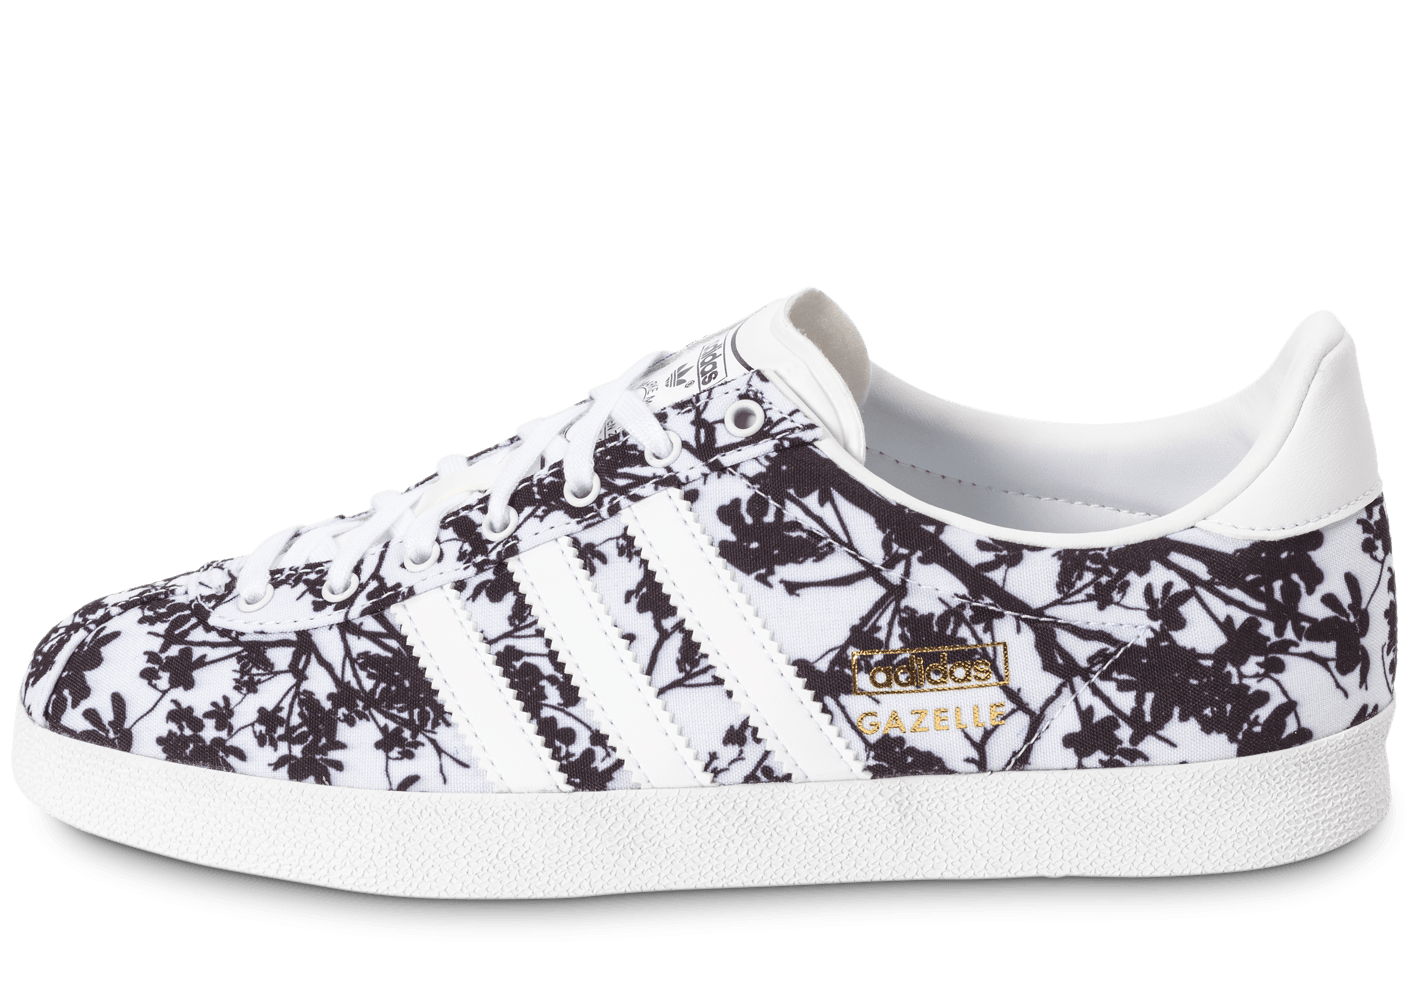 adidas gazelle og floral blanche et noire chaussures adidas chausport. Black Bedroom Furniture Sets. Home Design Ideas